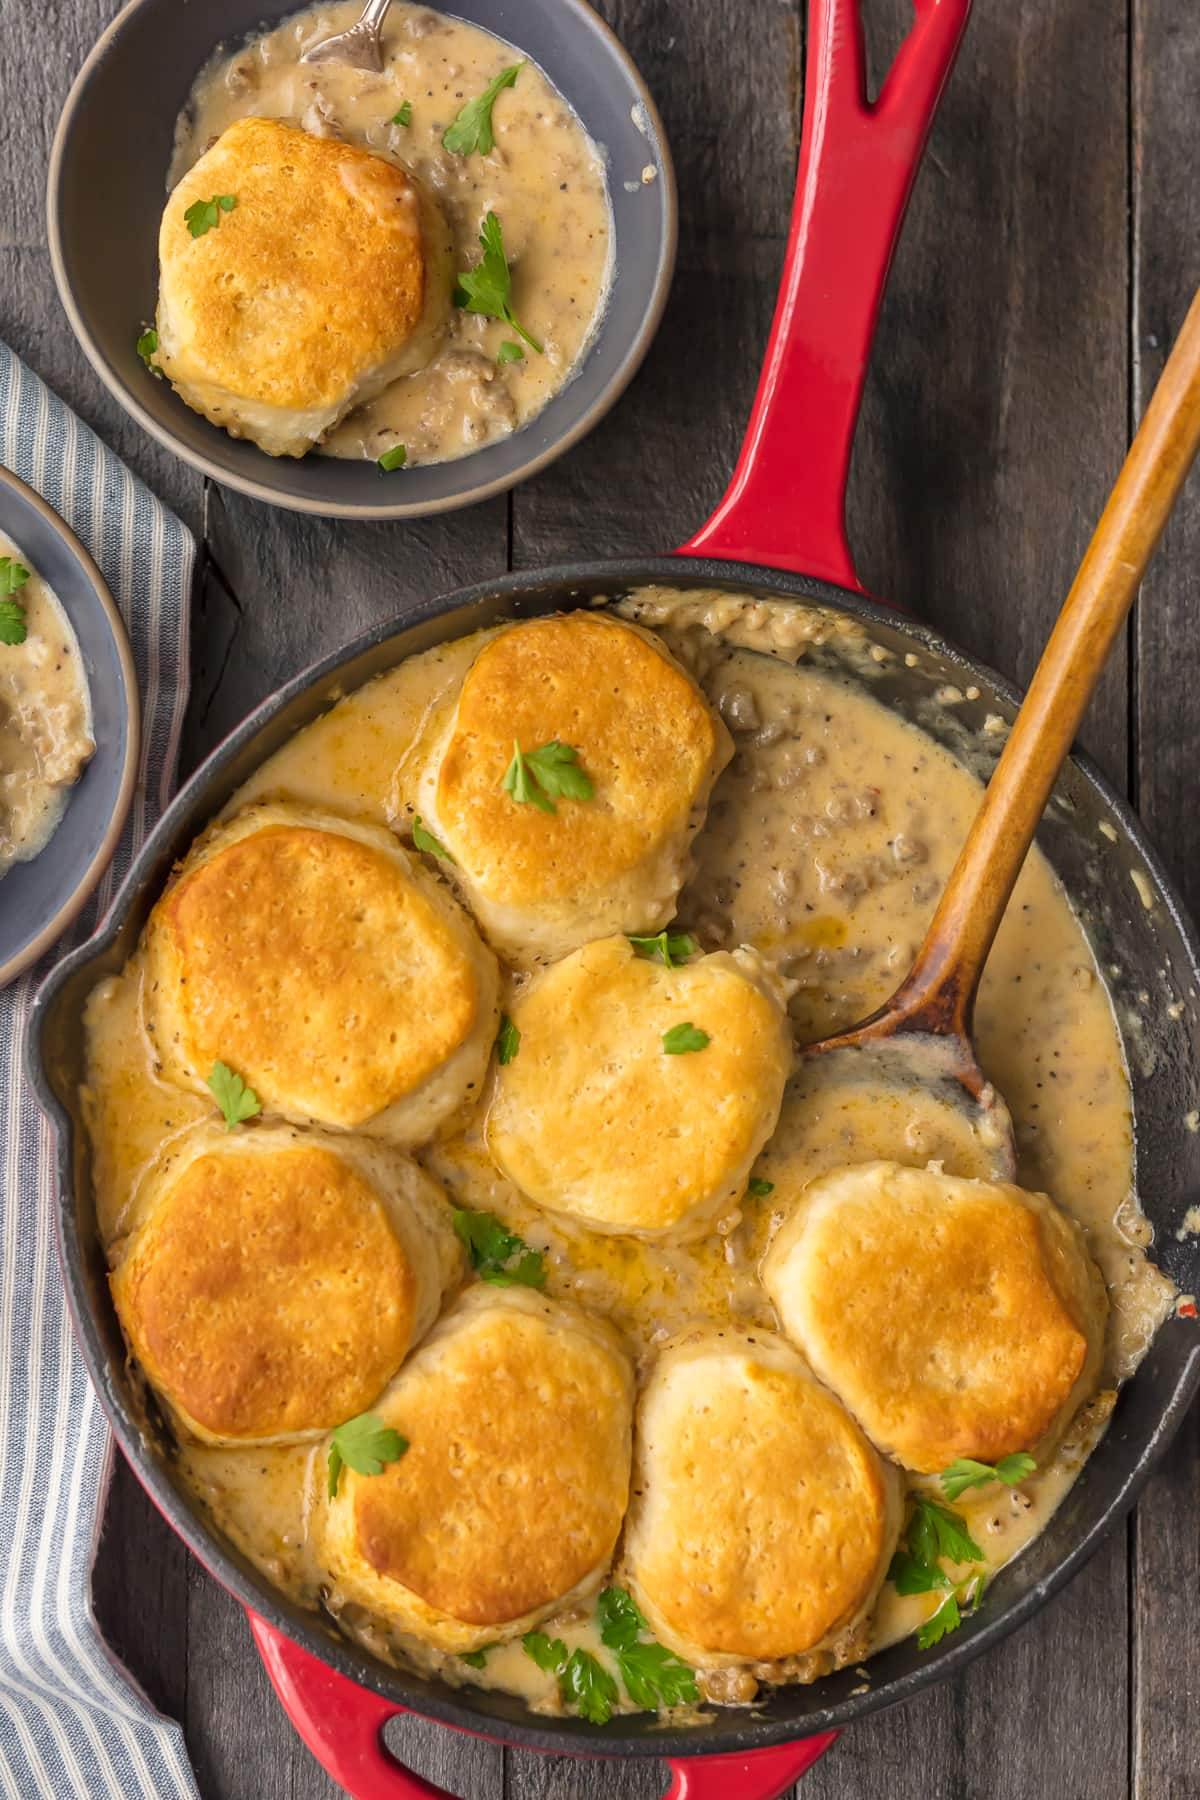 One pan skillet breakfast: biscuits and gravy in a skillet